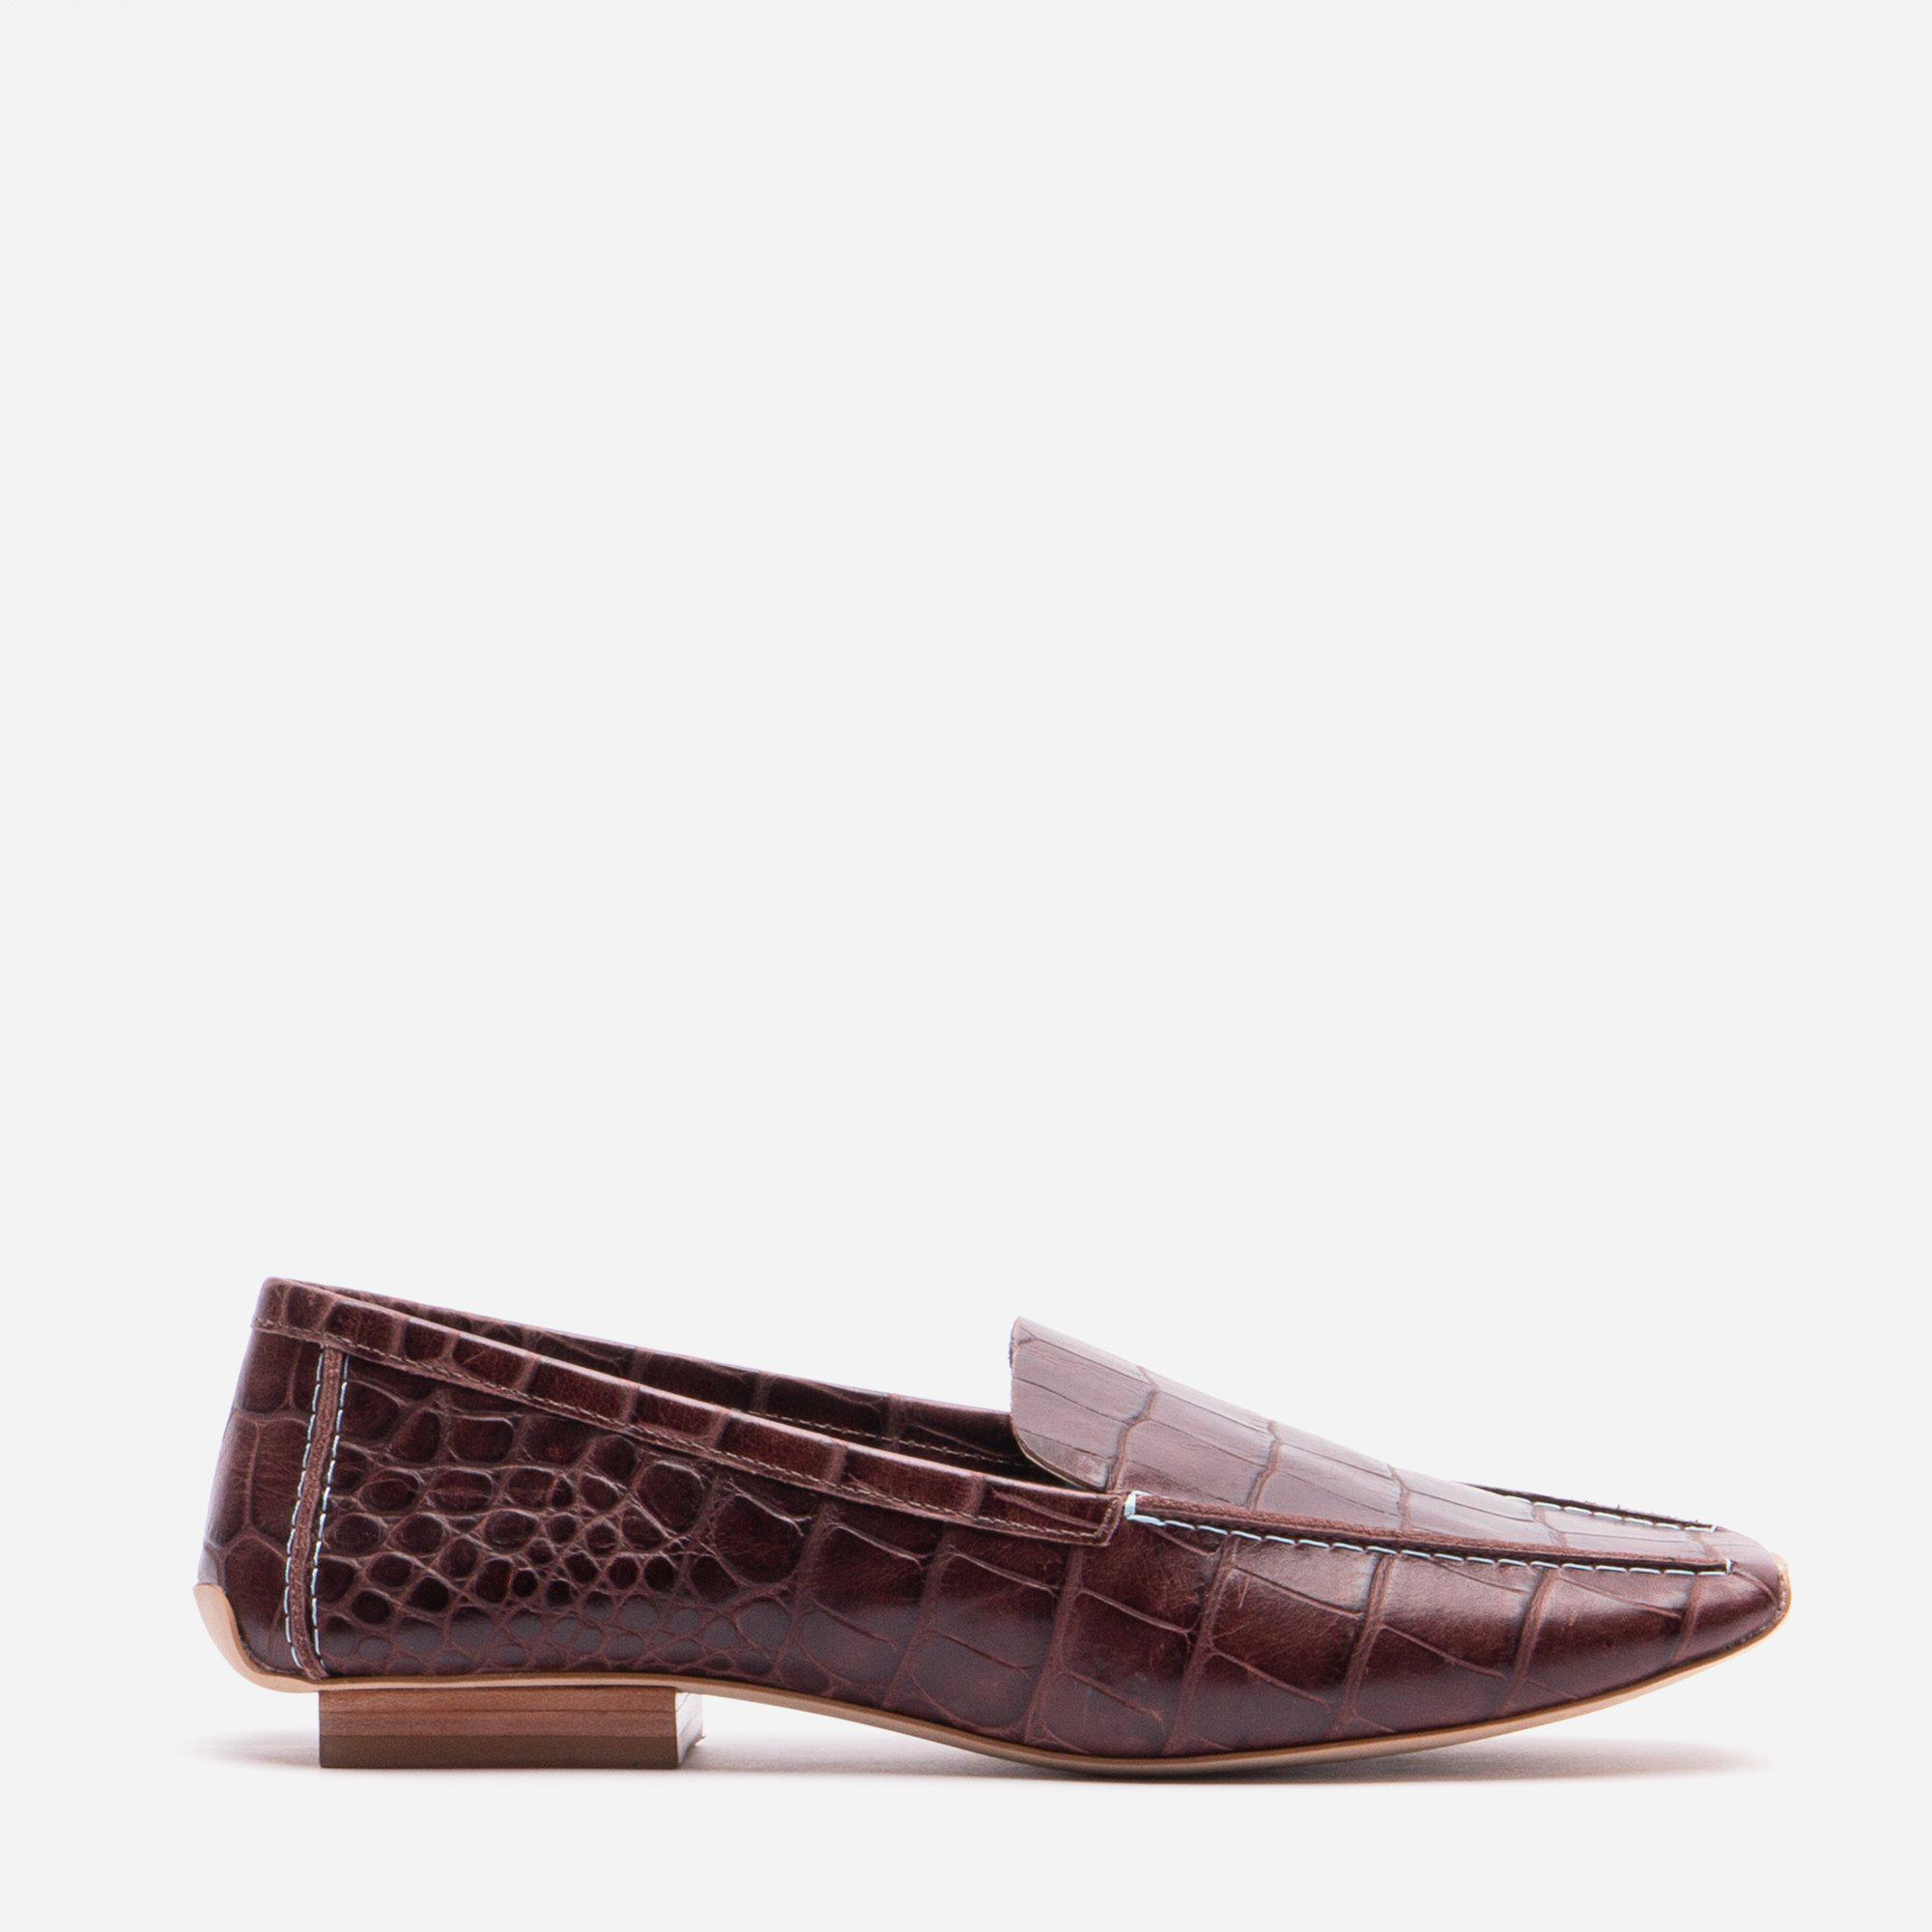 Elyce Loafer Croc Embossed Chocolate